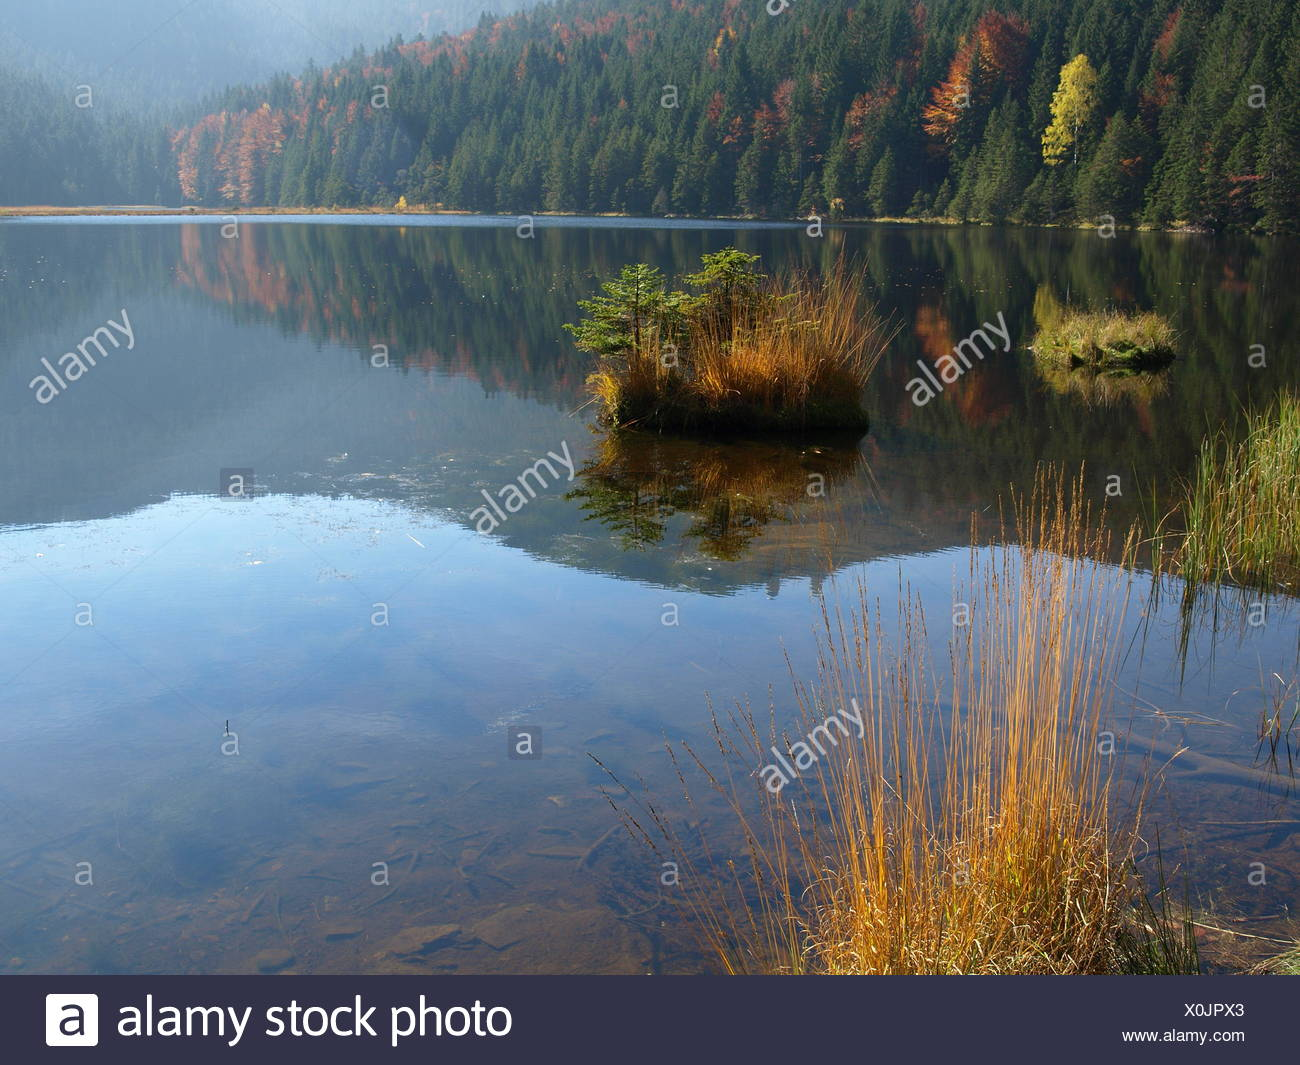 Bergsee Insel Schwimmen Wald Baum Ufer Herbst Stock Photos Bergsee